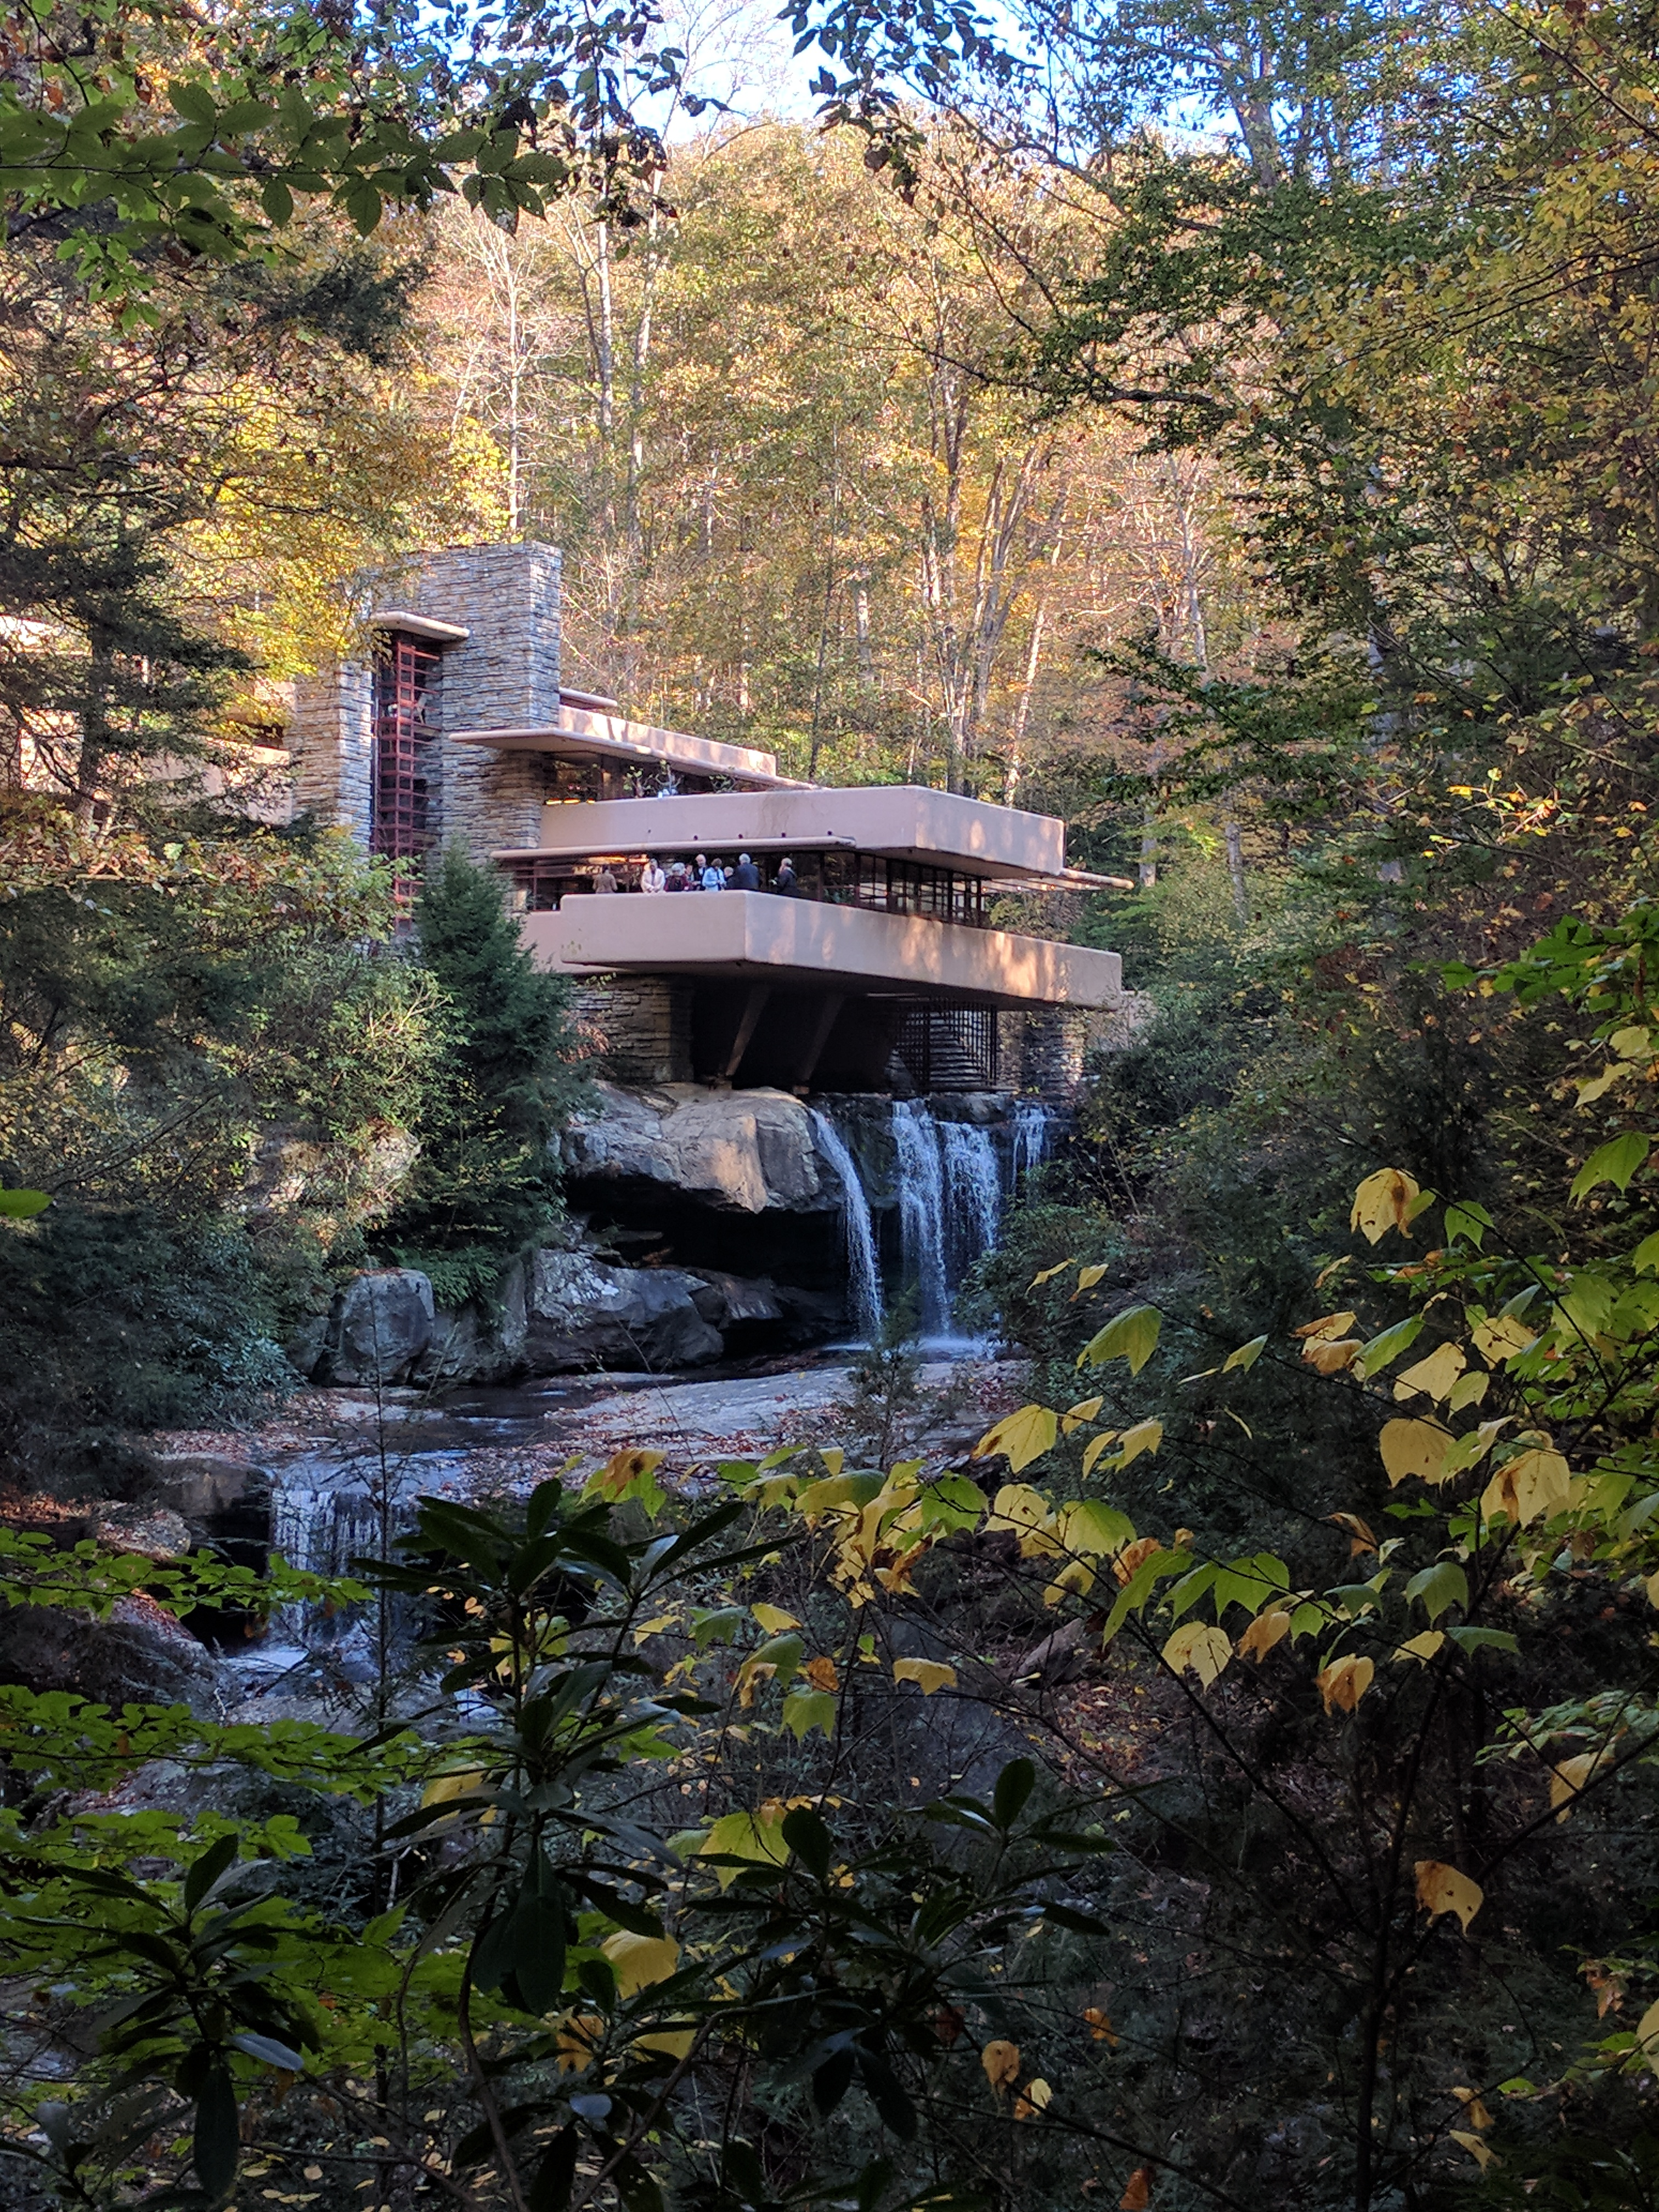 Falling Water House Usa Elevation Of Middle Ridge Rd Ohiopyle Pa Usa Topographic Map